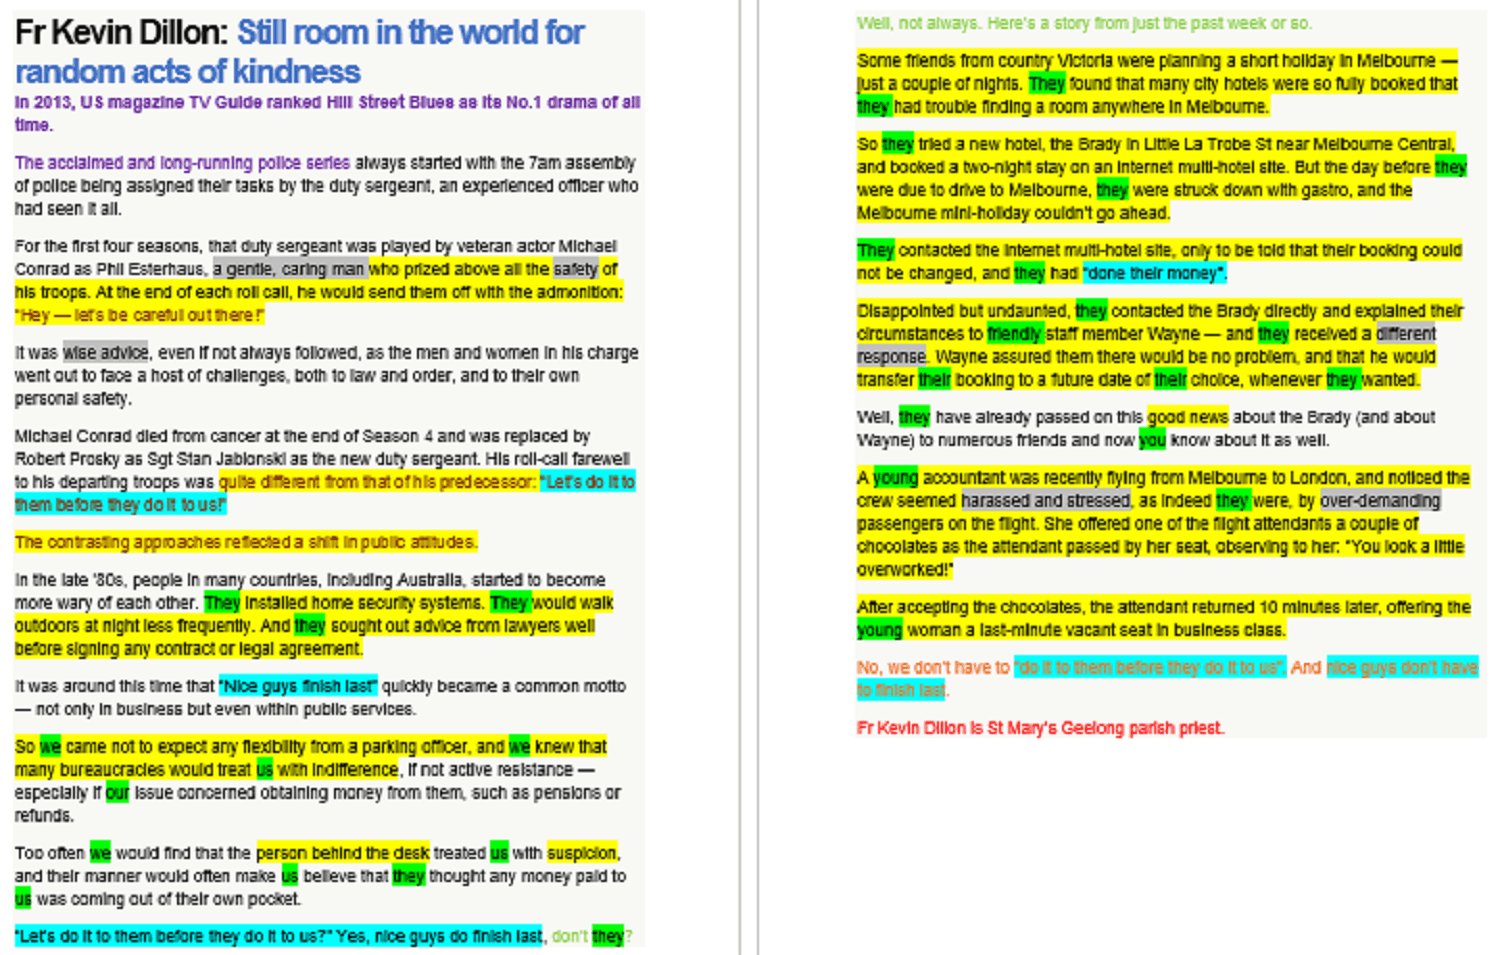 Opinion Article Examples